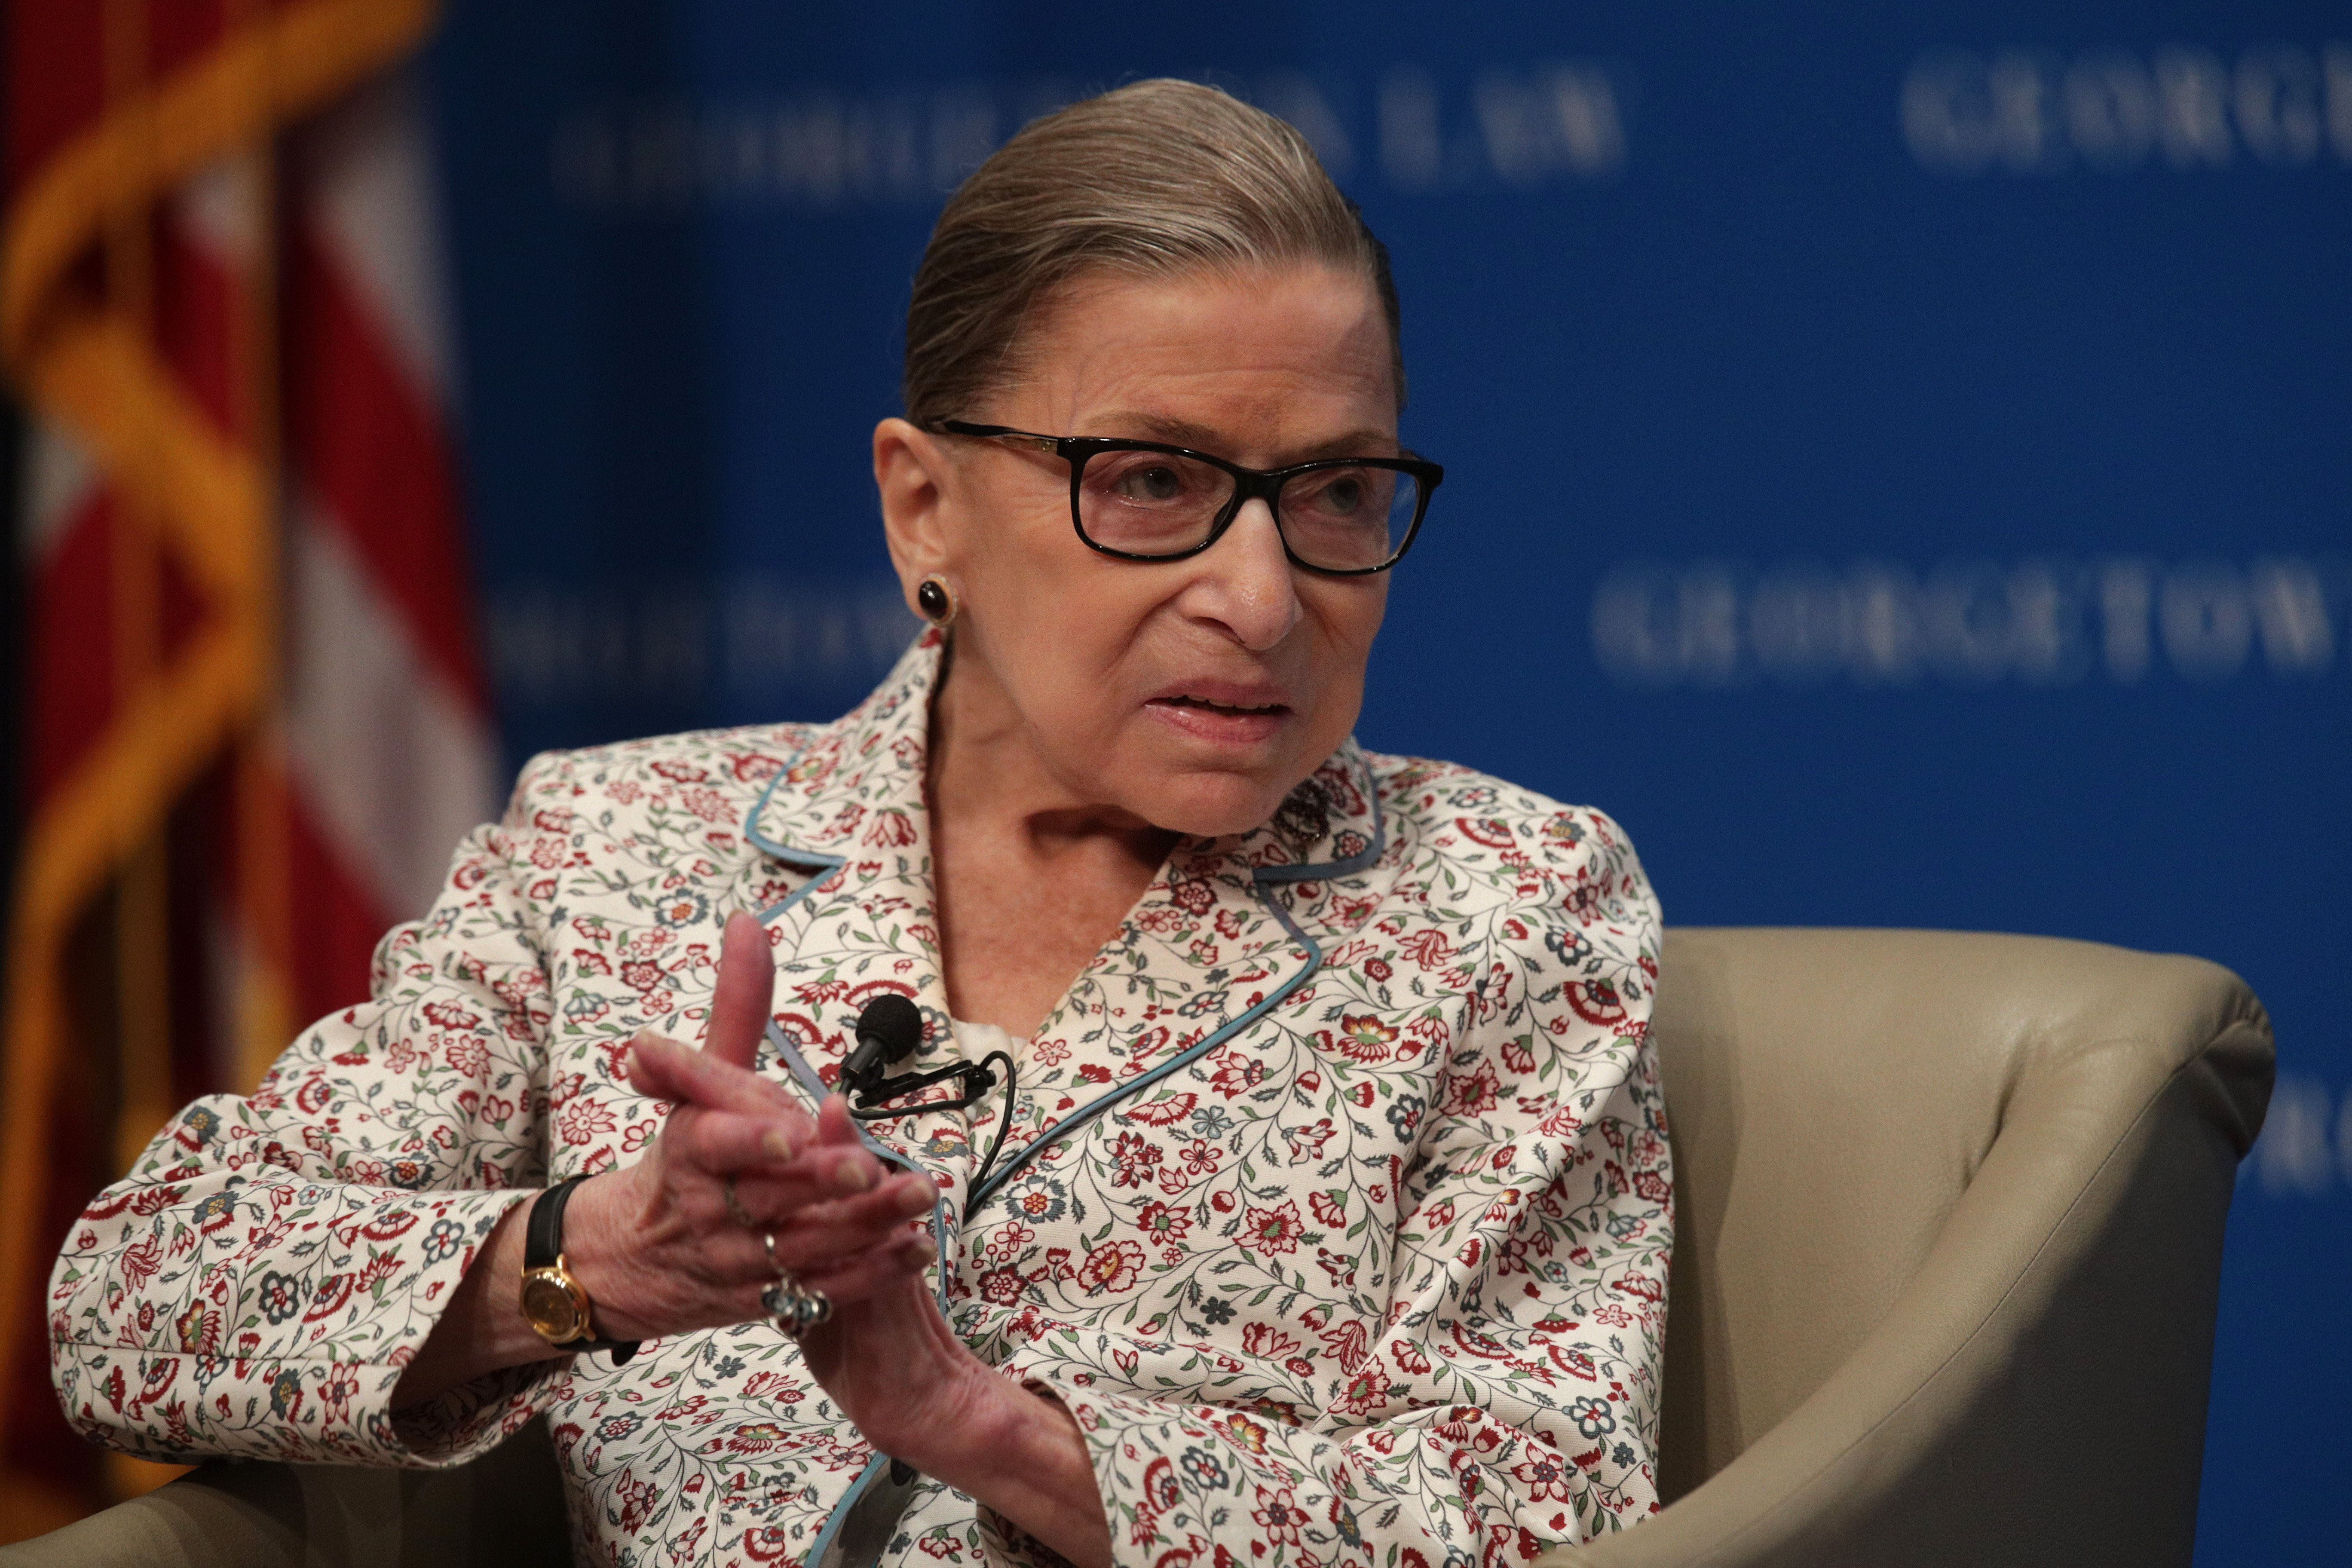 Supreme Court Associate Justice Ruth Bader Ginsburg participates in a discussion at Georgetown University Law Center July 2, 2019 | Photo: Getty Images